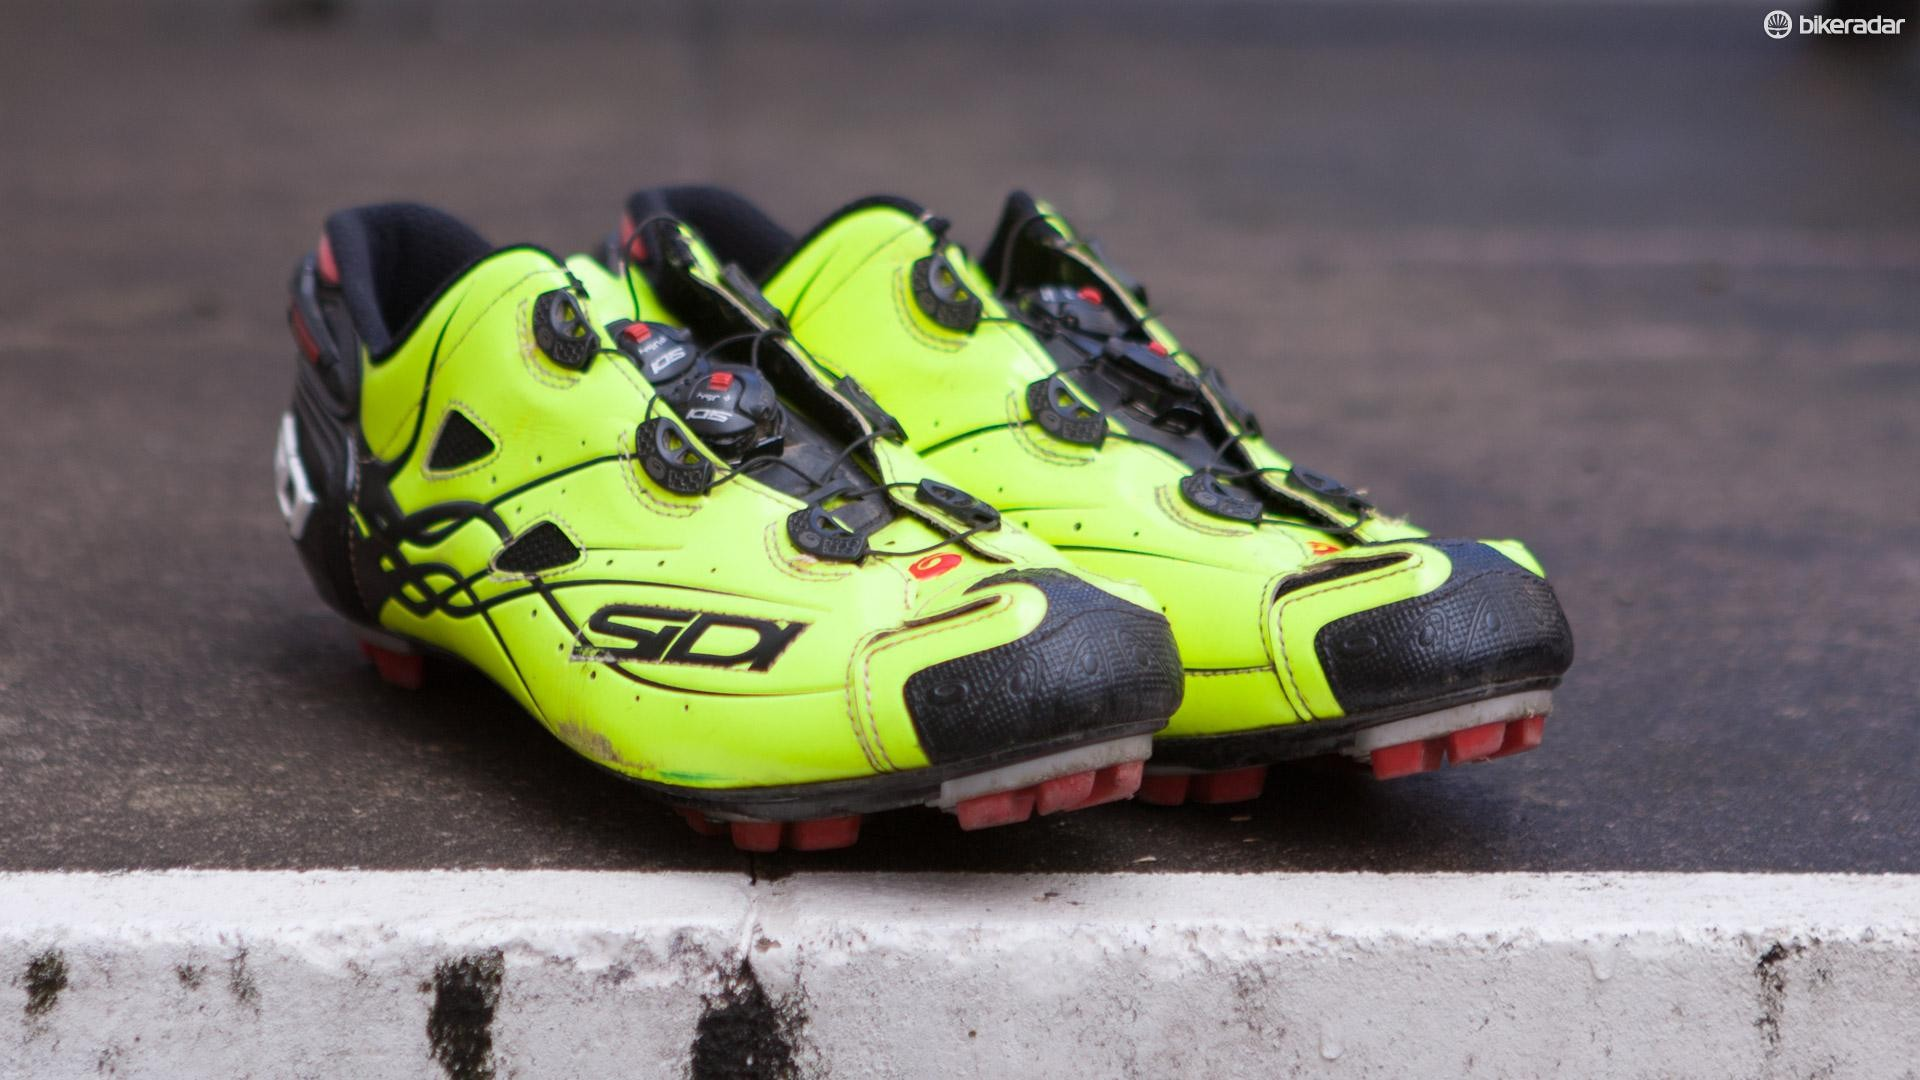 I've put some decent time in with the Sidi Tigers too